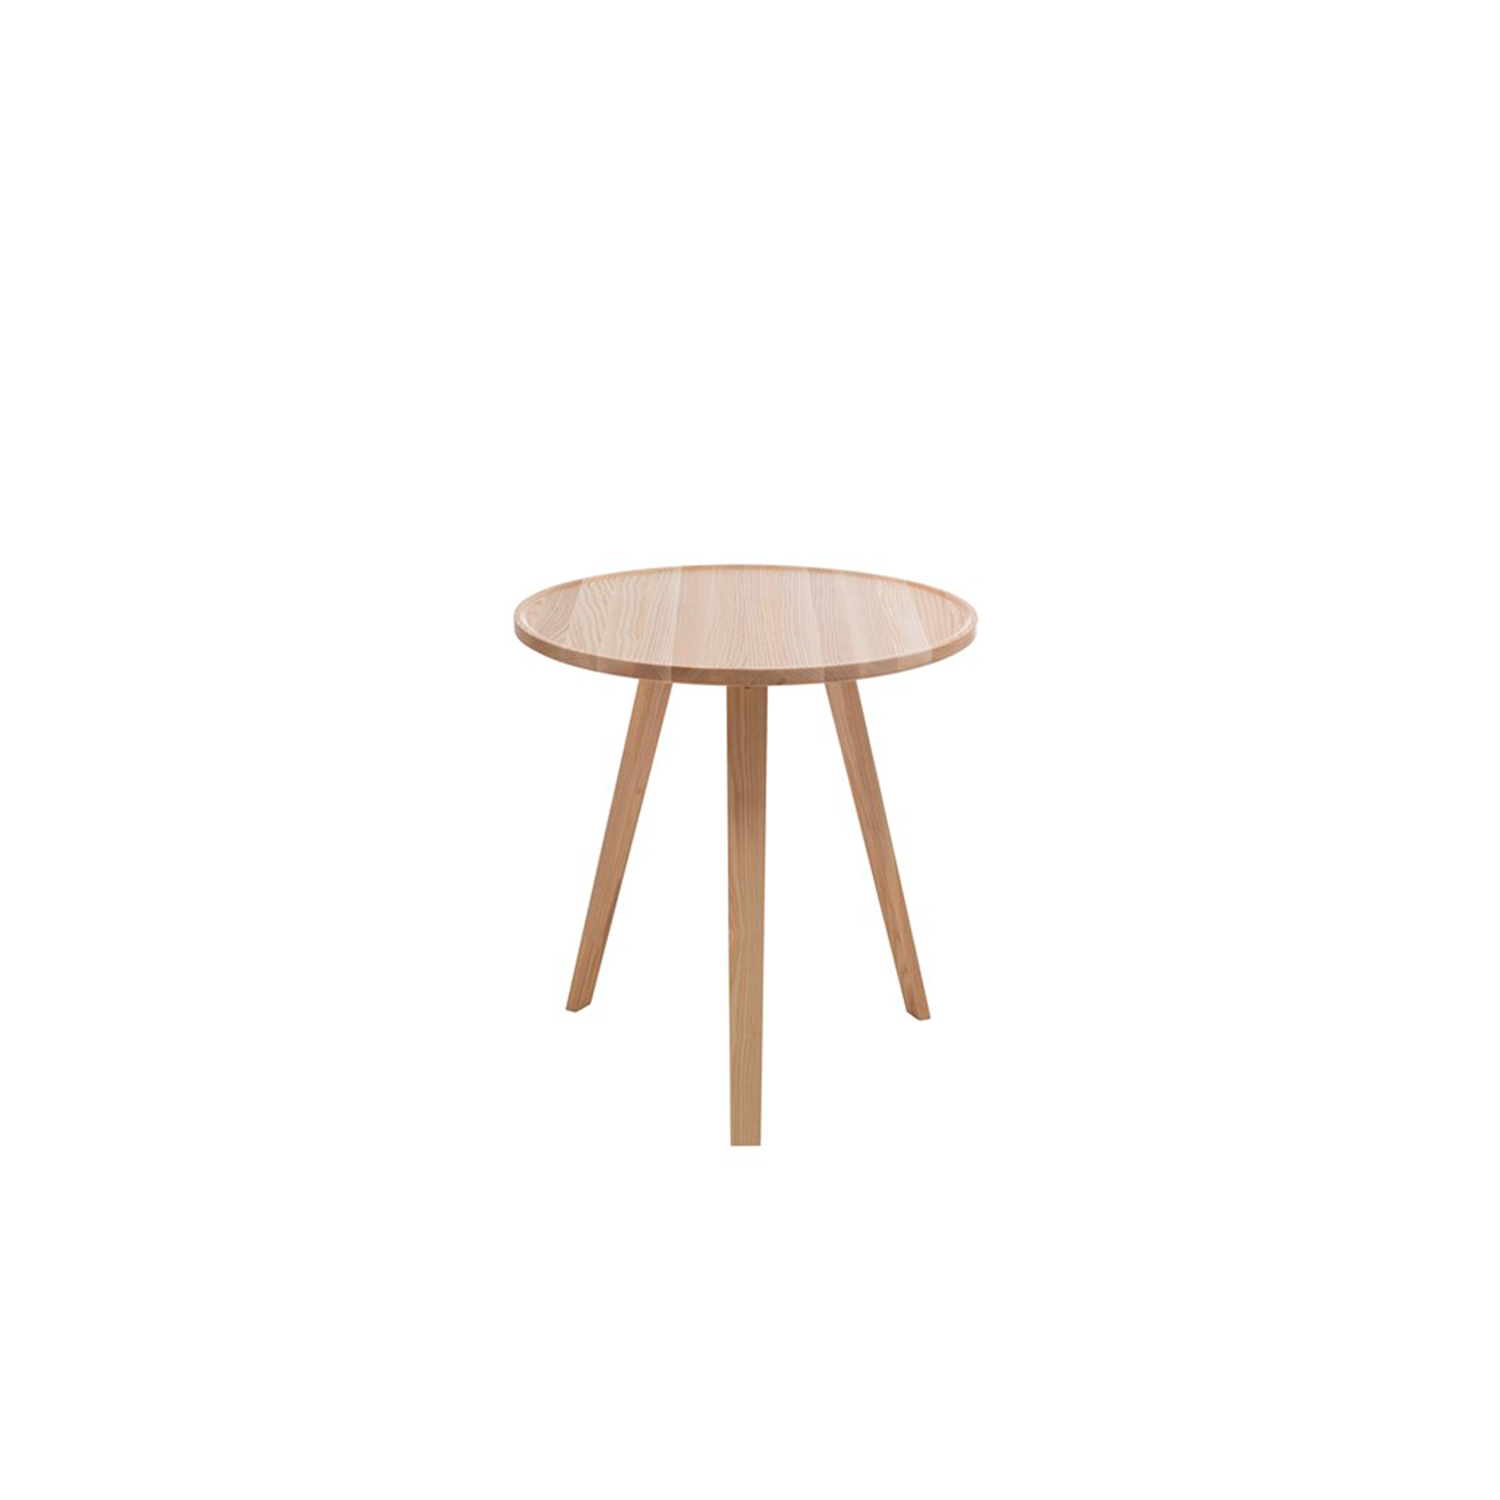 Mill Round Coffee Table - Mill (2012) is a table with a solid wooden top and legs. The tabletop has been milled down to produce its distinctive appearance. Mill is available with a round, square or rectangular top in a number of different sizes and in heights of 460, 590 and 720 mm. The table is made of solid wood, so it can be sanded down and relacquered a number of times, making it suitable for use in settings where it is subjected to a lot of wear and tear.  Mill comes in a choice of oak, birch, ash, standard stains on ash and white glazed oak or ash. The table is also available in standard colors with tabletop made in MDF. Special sizes and other finishes upon request. You can use Mill to furnish cafés, kitchens and living rooms, or in hotels, schools, waiting areas etc.  Additional heights and dimensions are available, please see technical sheet attached and enquire for more details. | Matter of Stuff